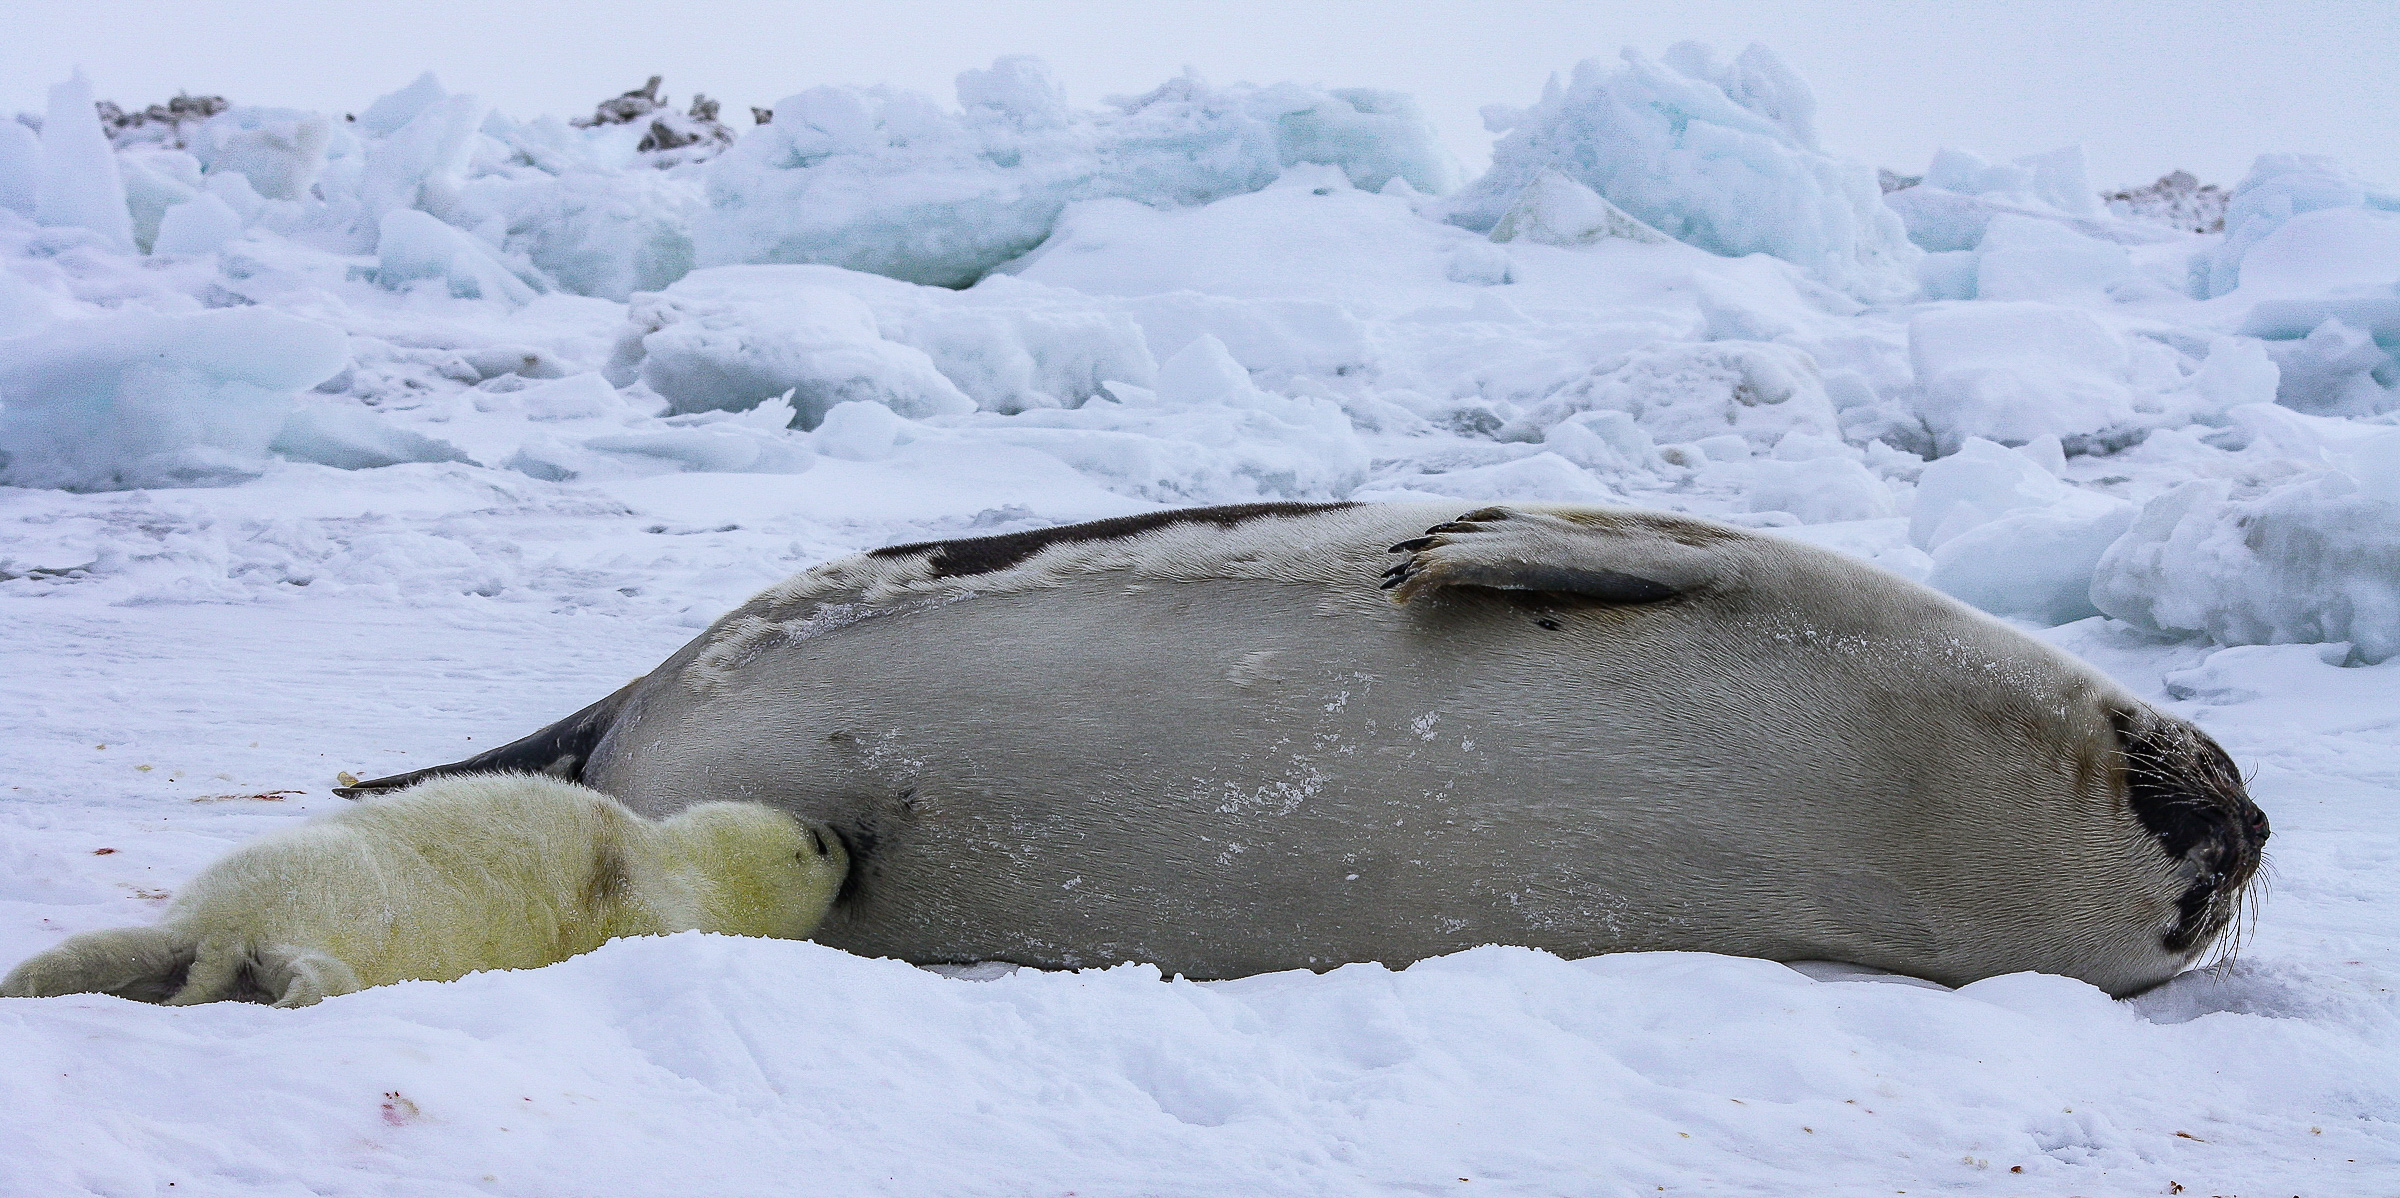 Weaning is rather sudden; the mother turns from nursing to mating, leaving the pup behind on the ice. Within a few days after weaning, it sheds its white coat. JONAA©Andrea King